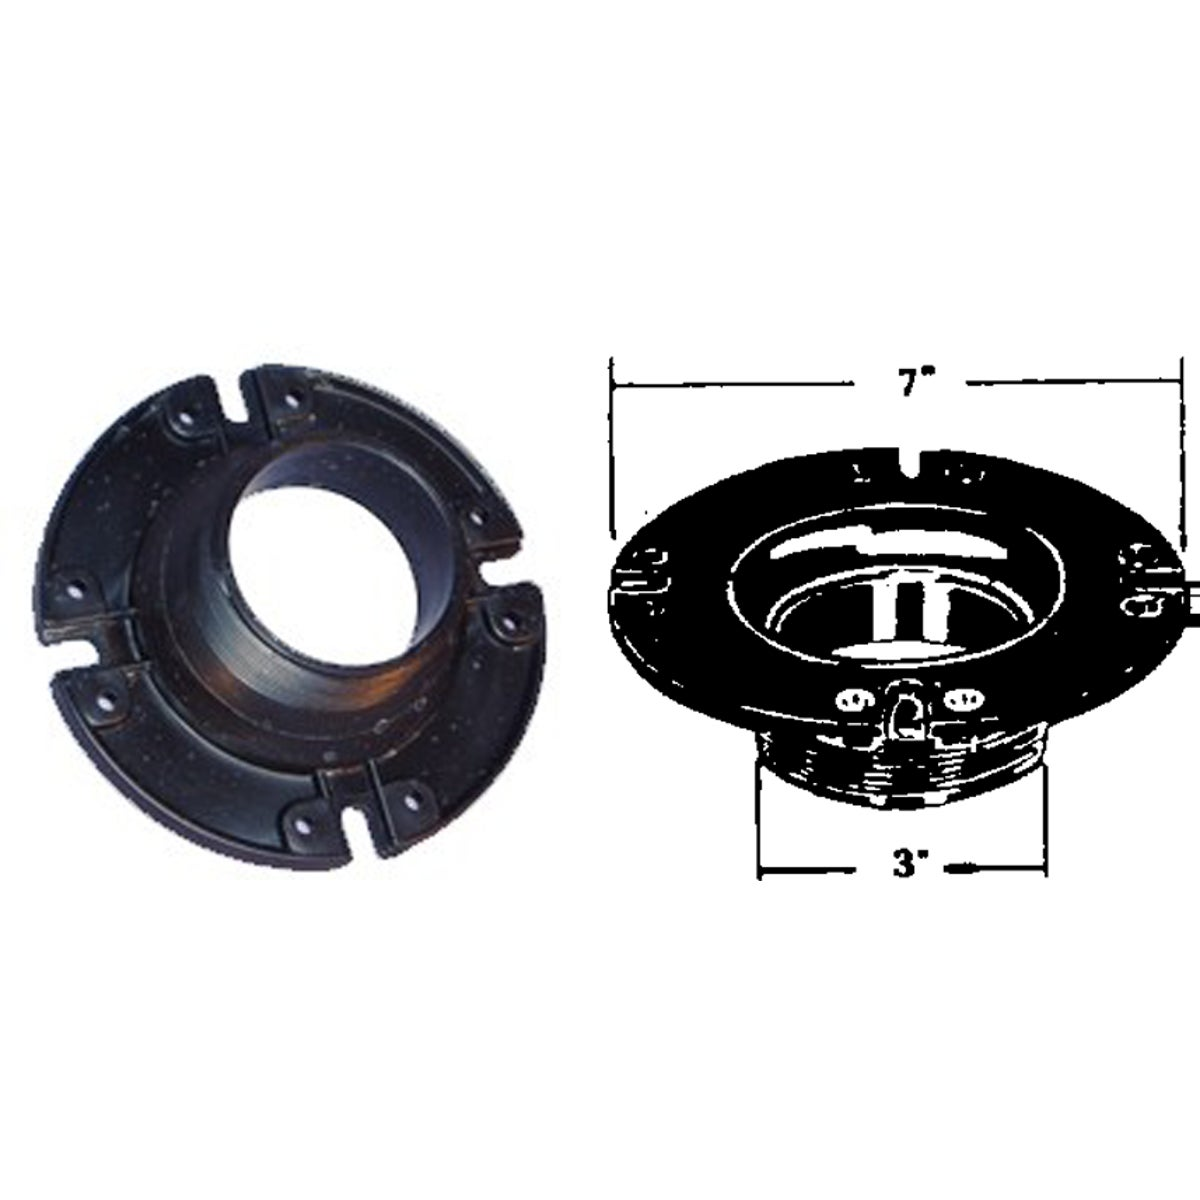 United States Hdwe. COMMODE FLANGE P-110C